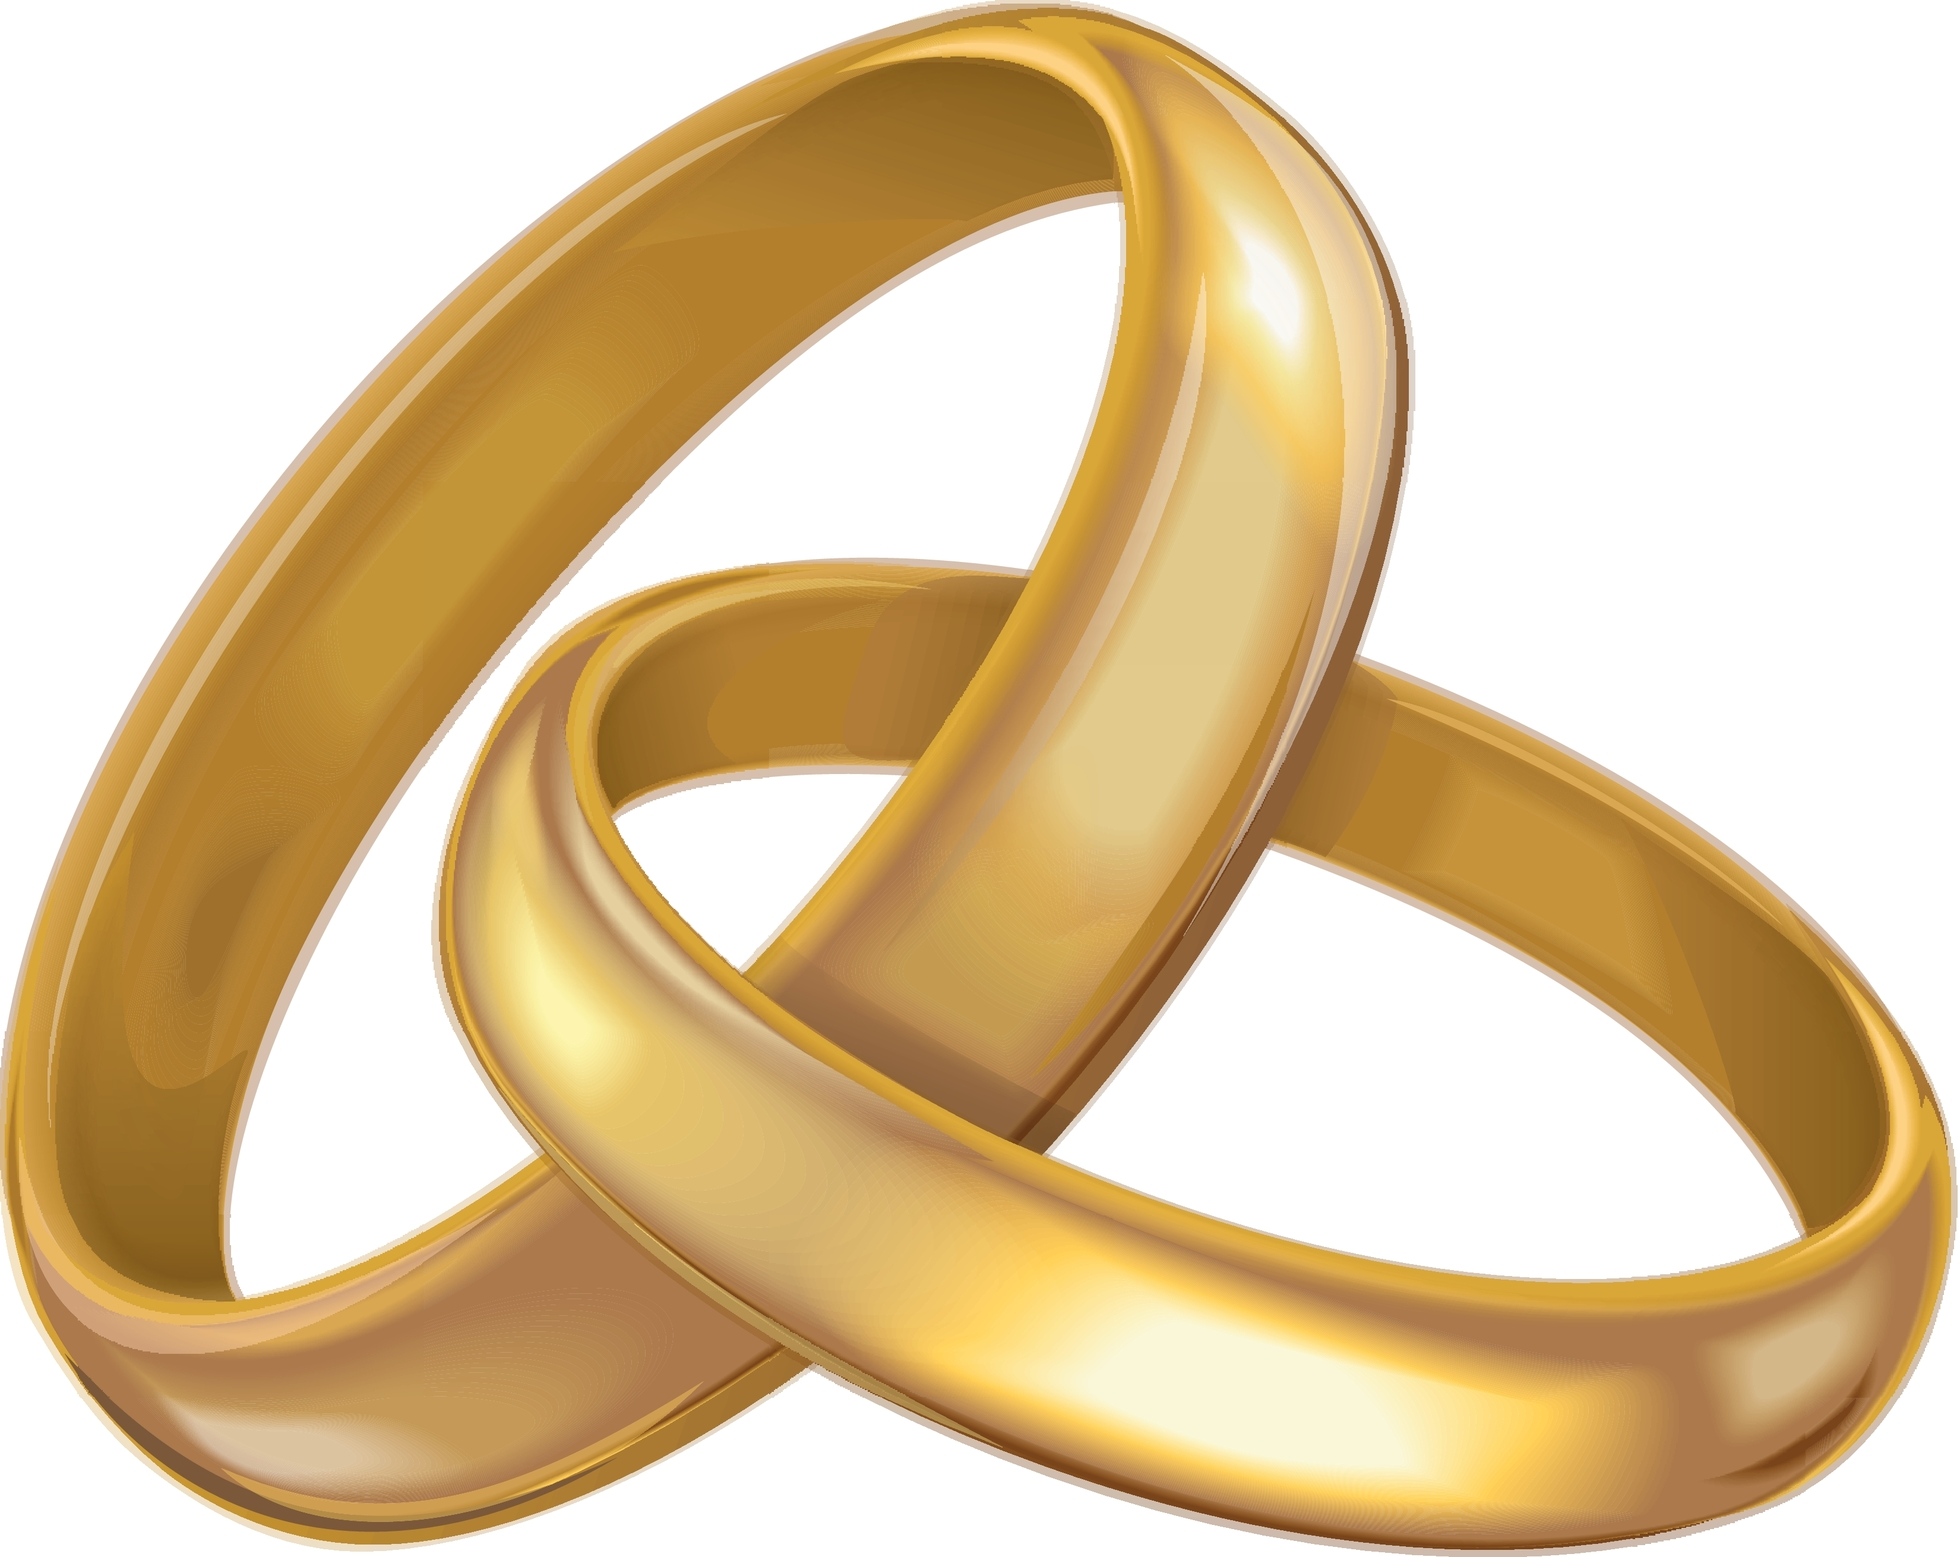 Intertwined Wedding Rings Png Free Intertwined Wedding